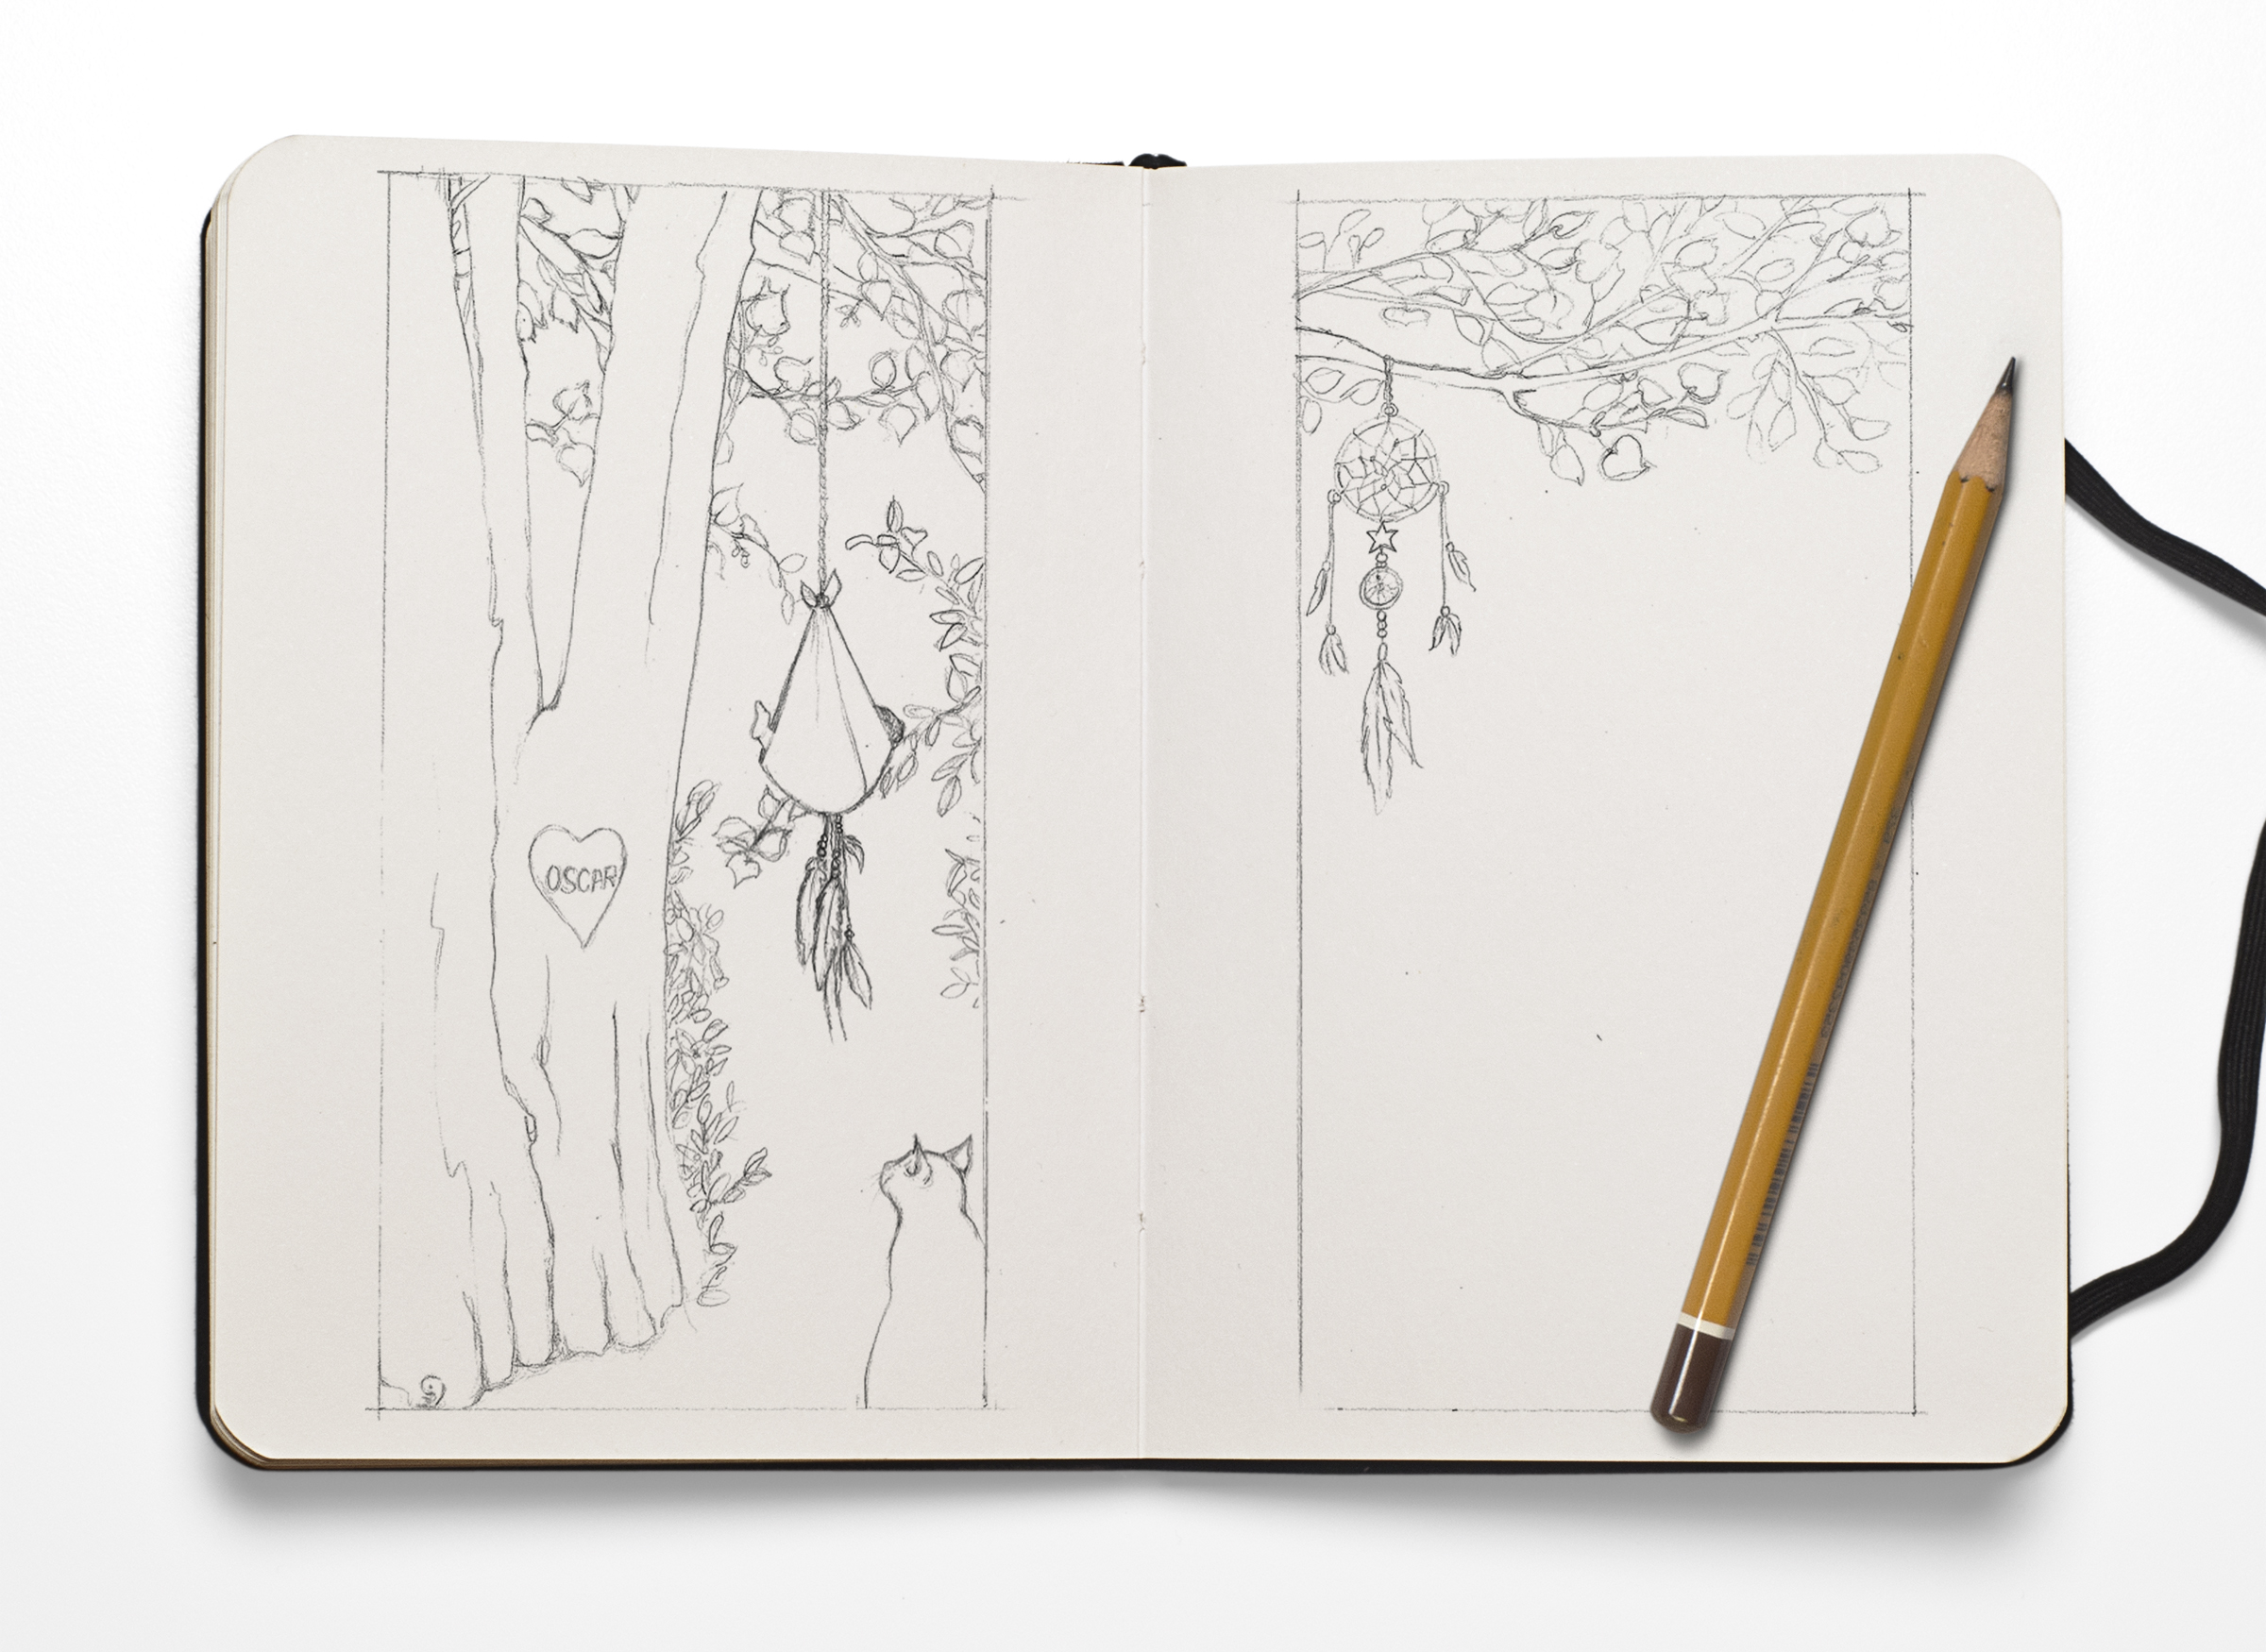 OSCAR MockUp_sketchbook